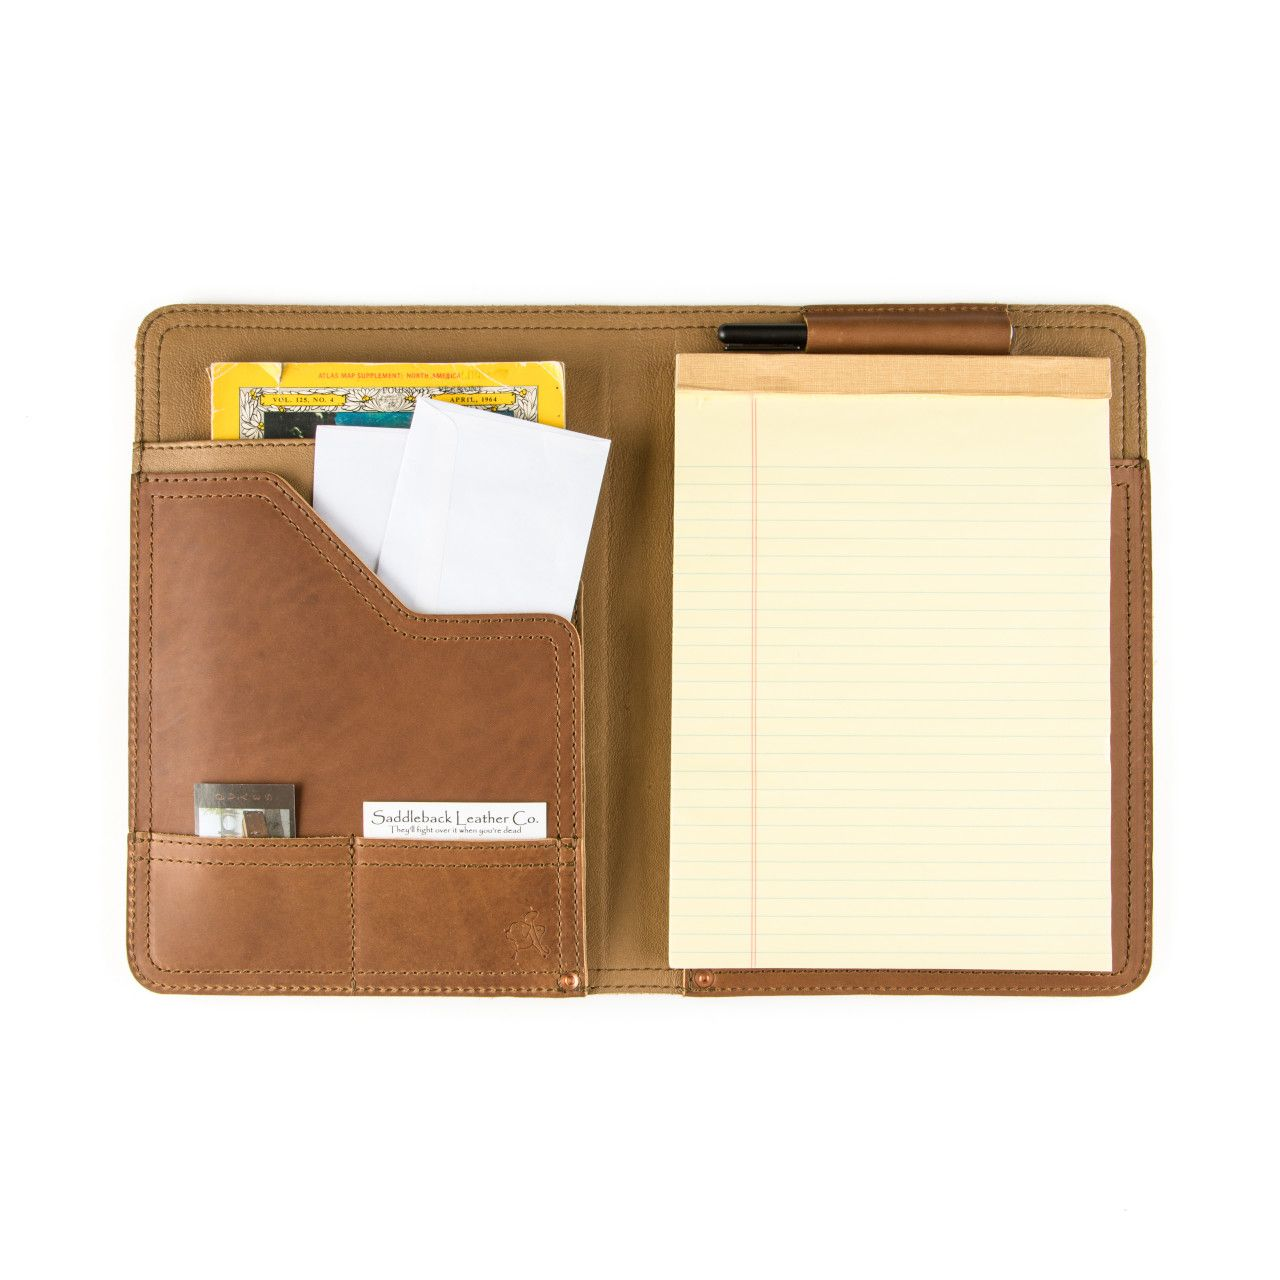 Notepad, business cards and map located in leather notepad cover medium in tobacco leather